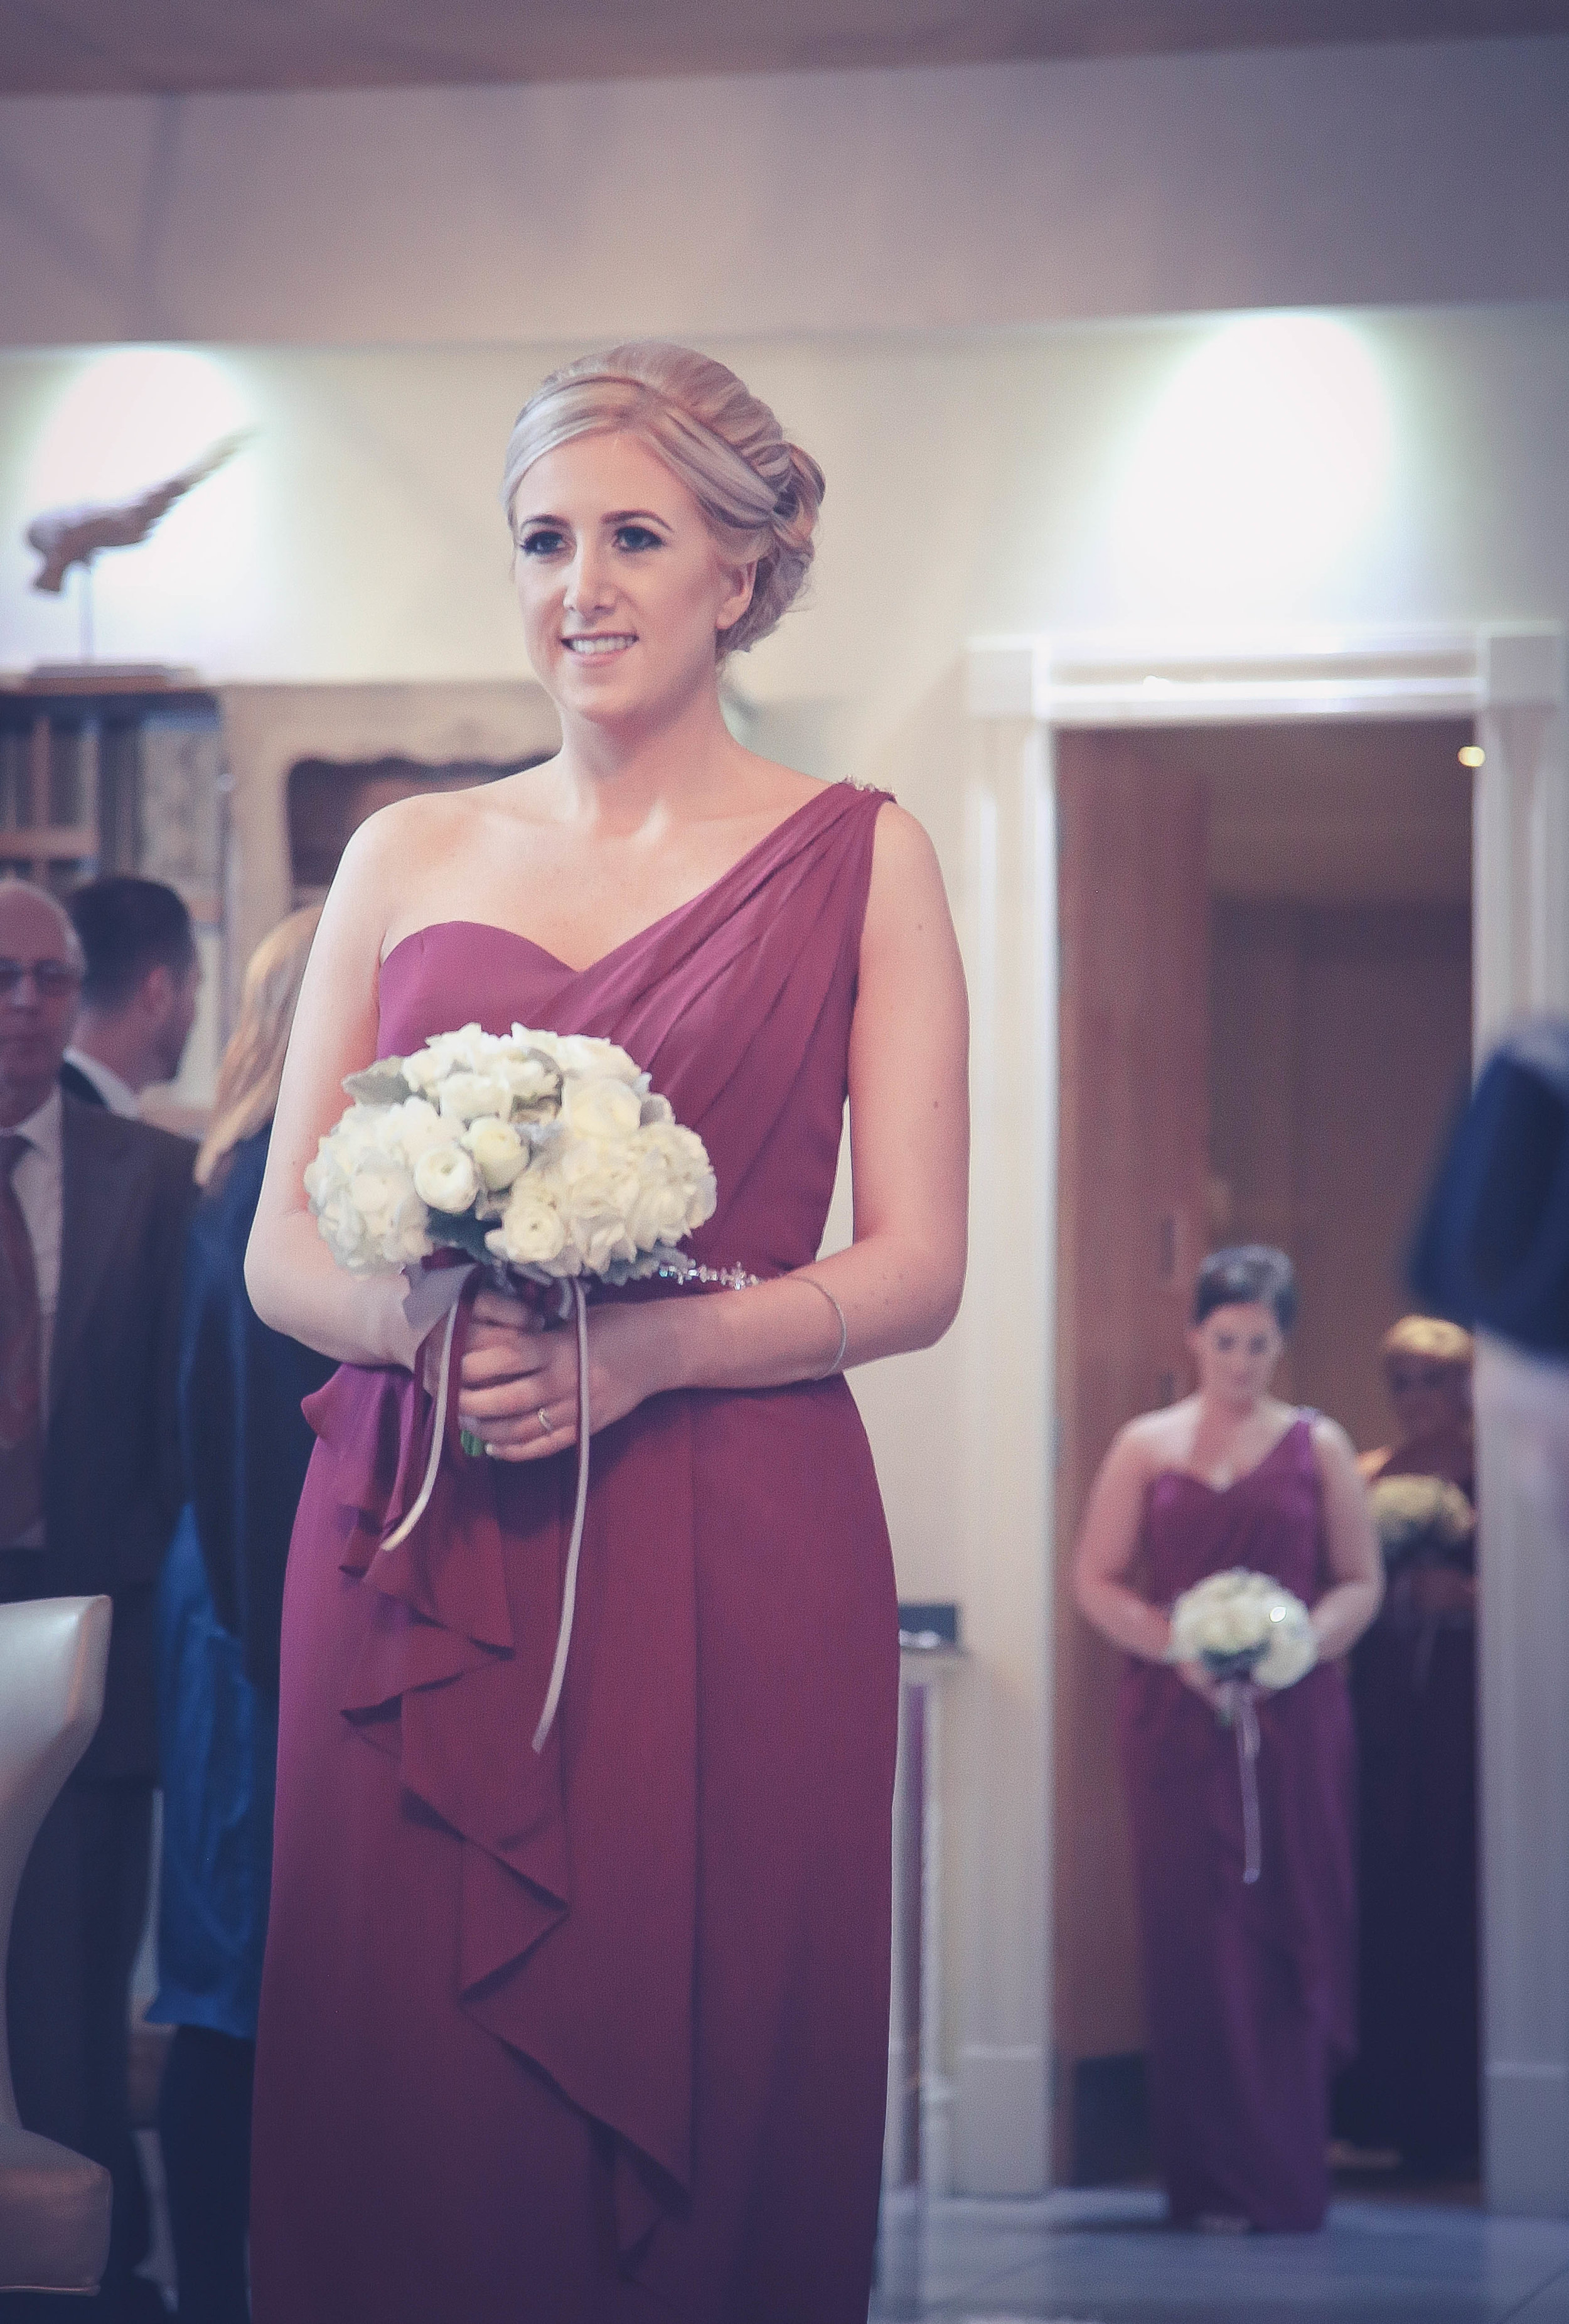 Weddings at the shankly hotel liverpool-54.jpg